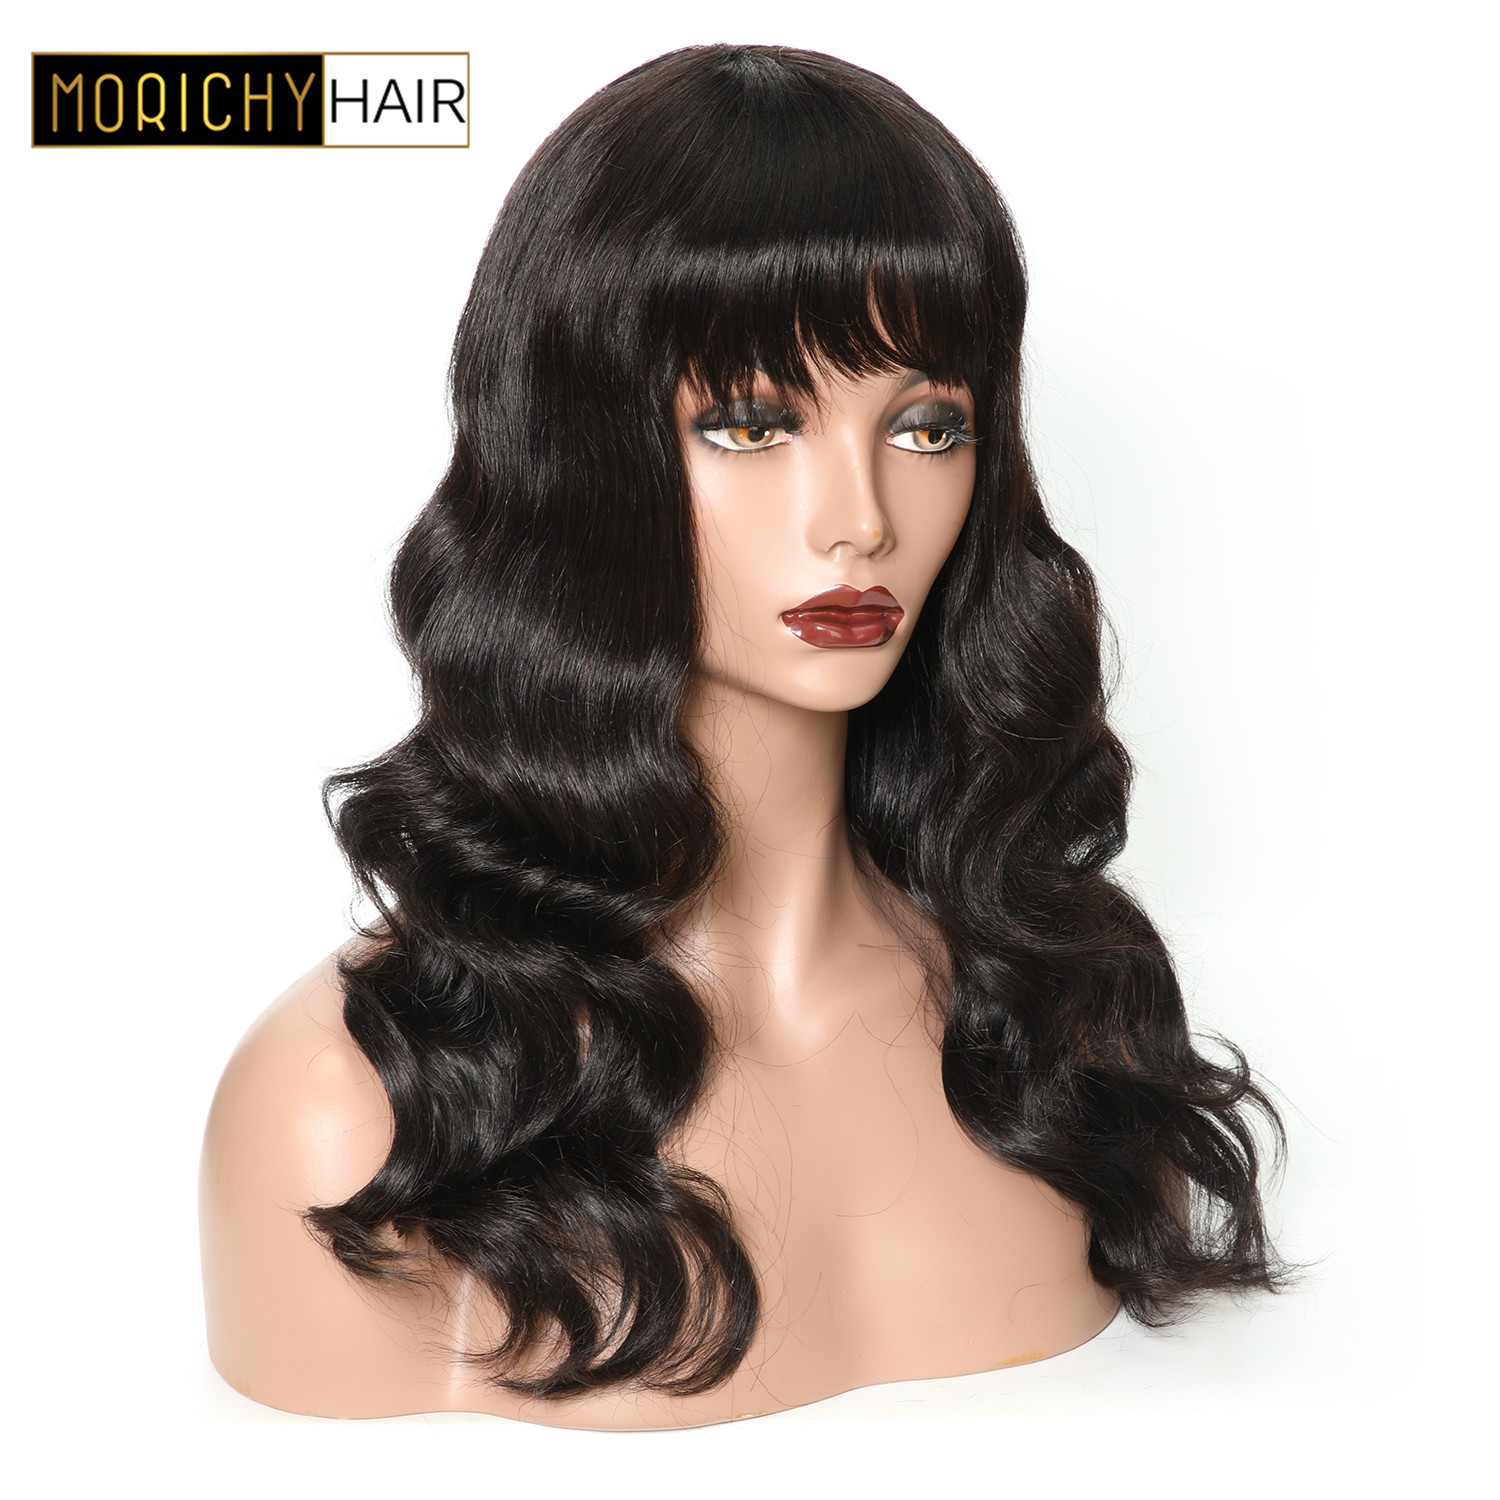 Morichy Wavy Human Hair Wig With Bangs For Women Brazilian Hair Colored Wig Non Remy 130% Density 1B And Burgundy Free Shipping